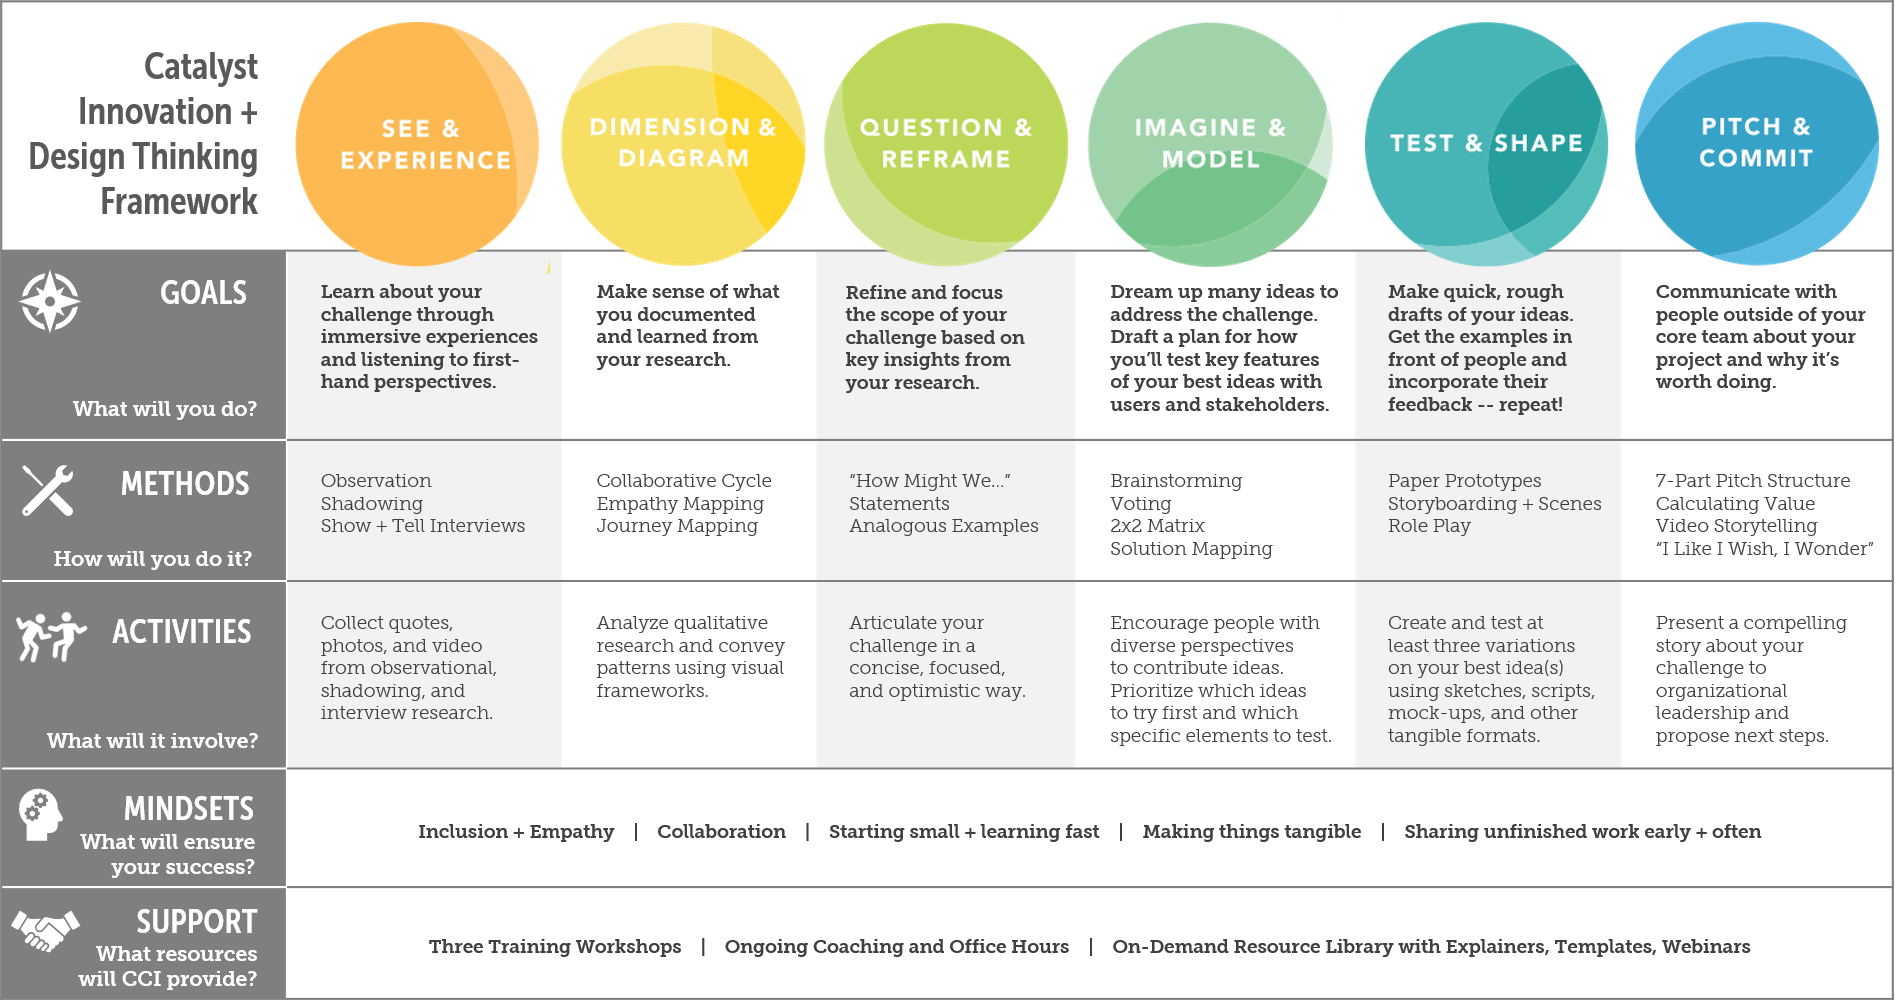 Pin by Andreas Kleiner on Frameworks Design thinking